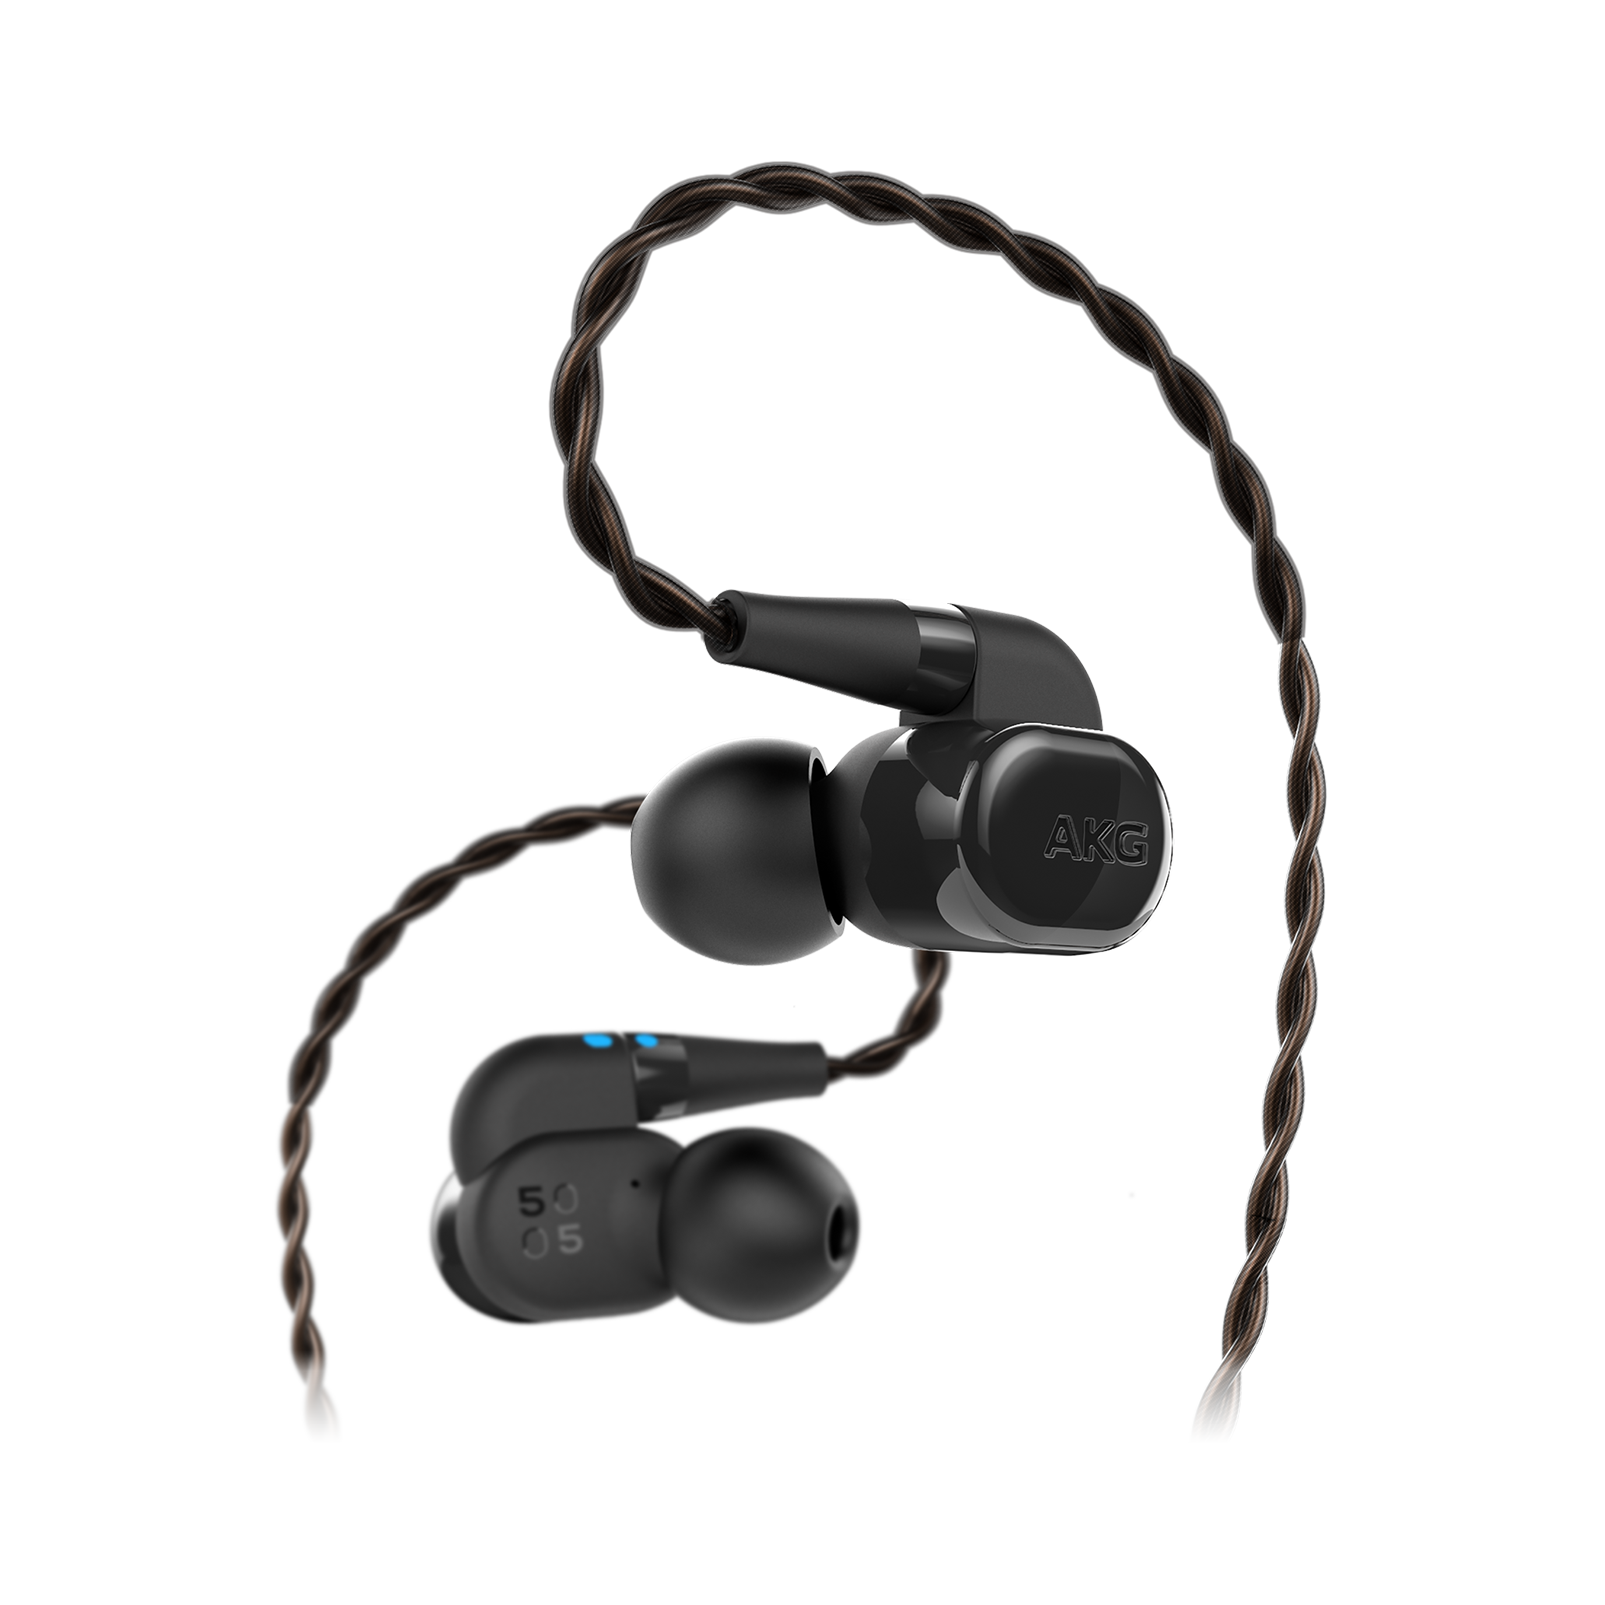 AKG N5005 - Black - Reference Class 5-driver configuration in-ear headphones with customizable sound - Hero